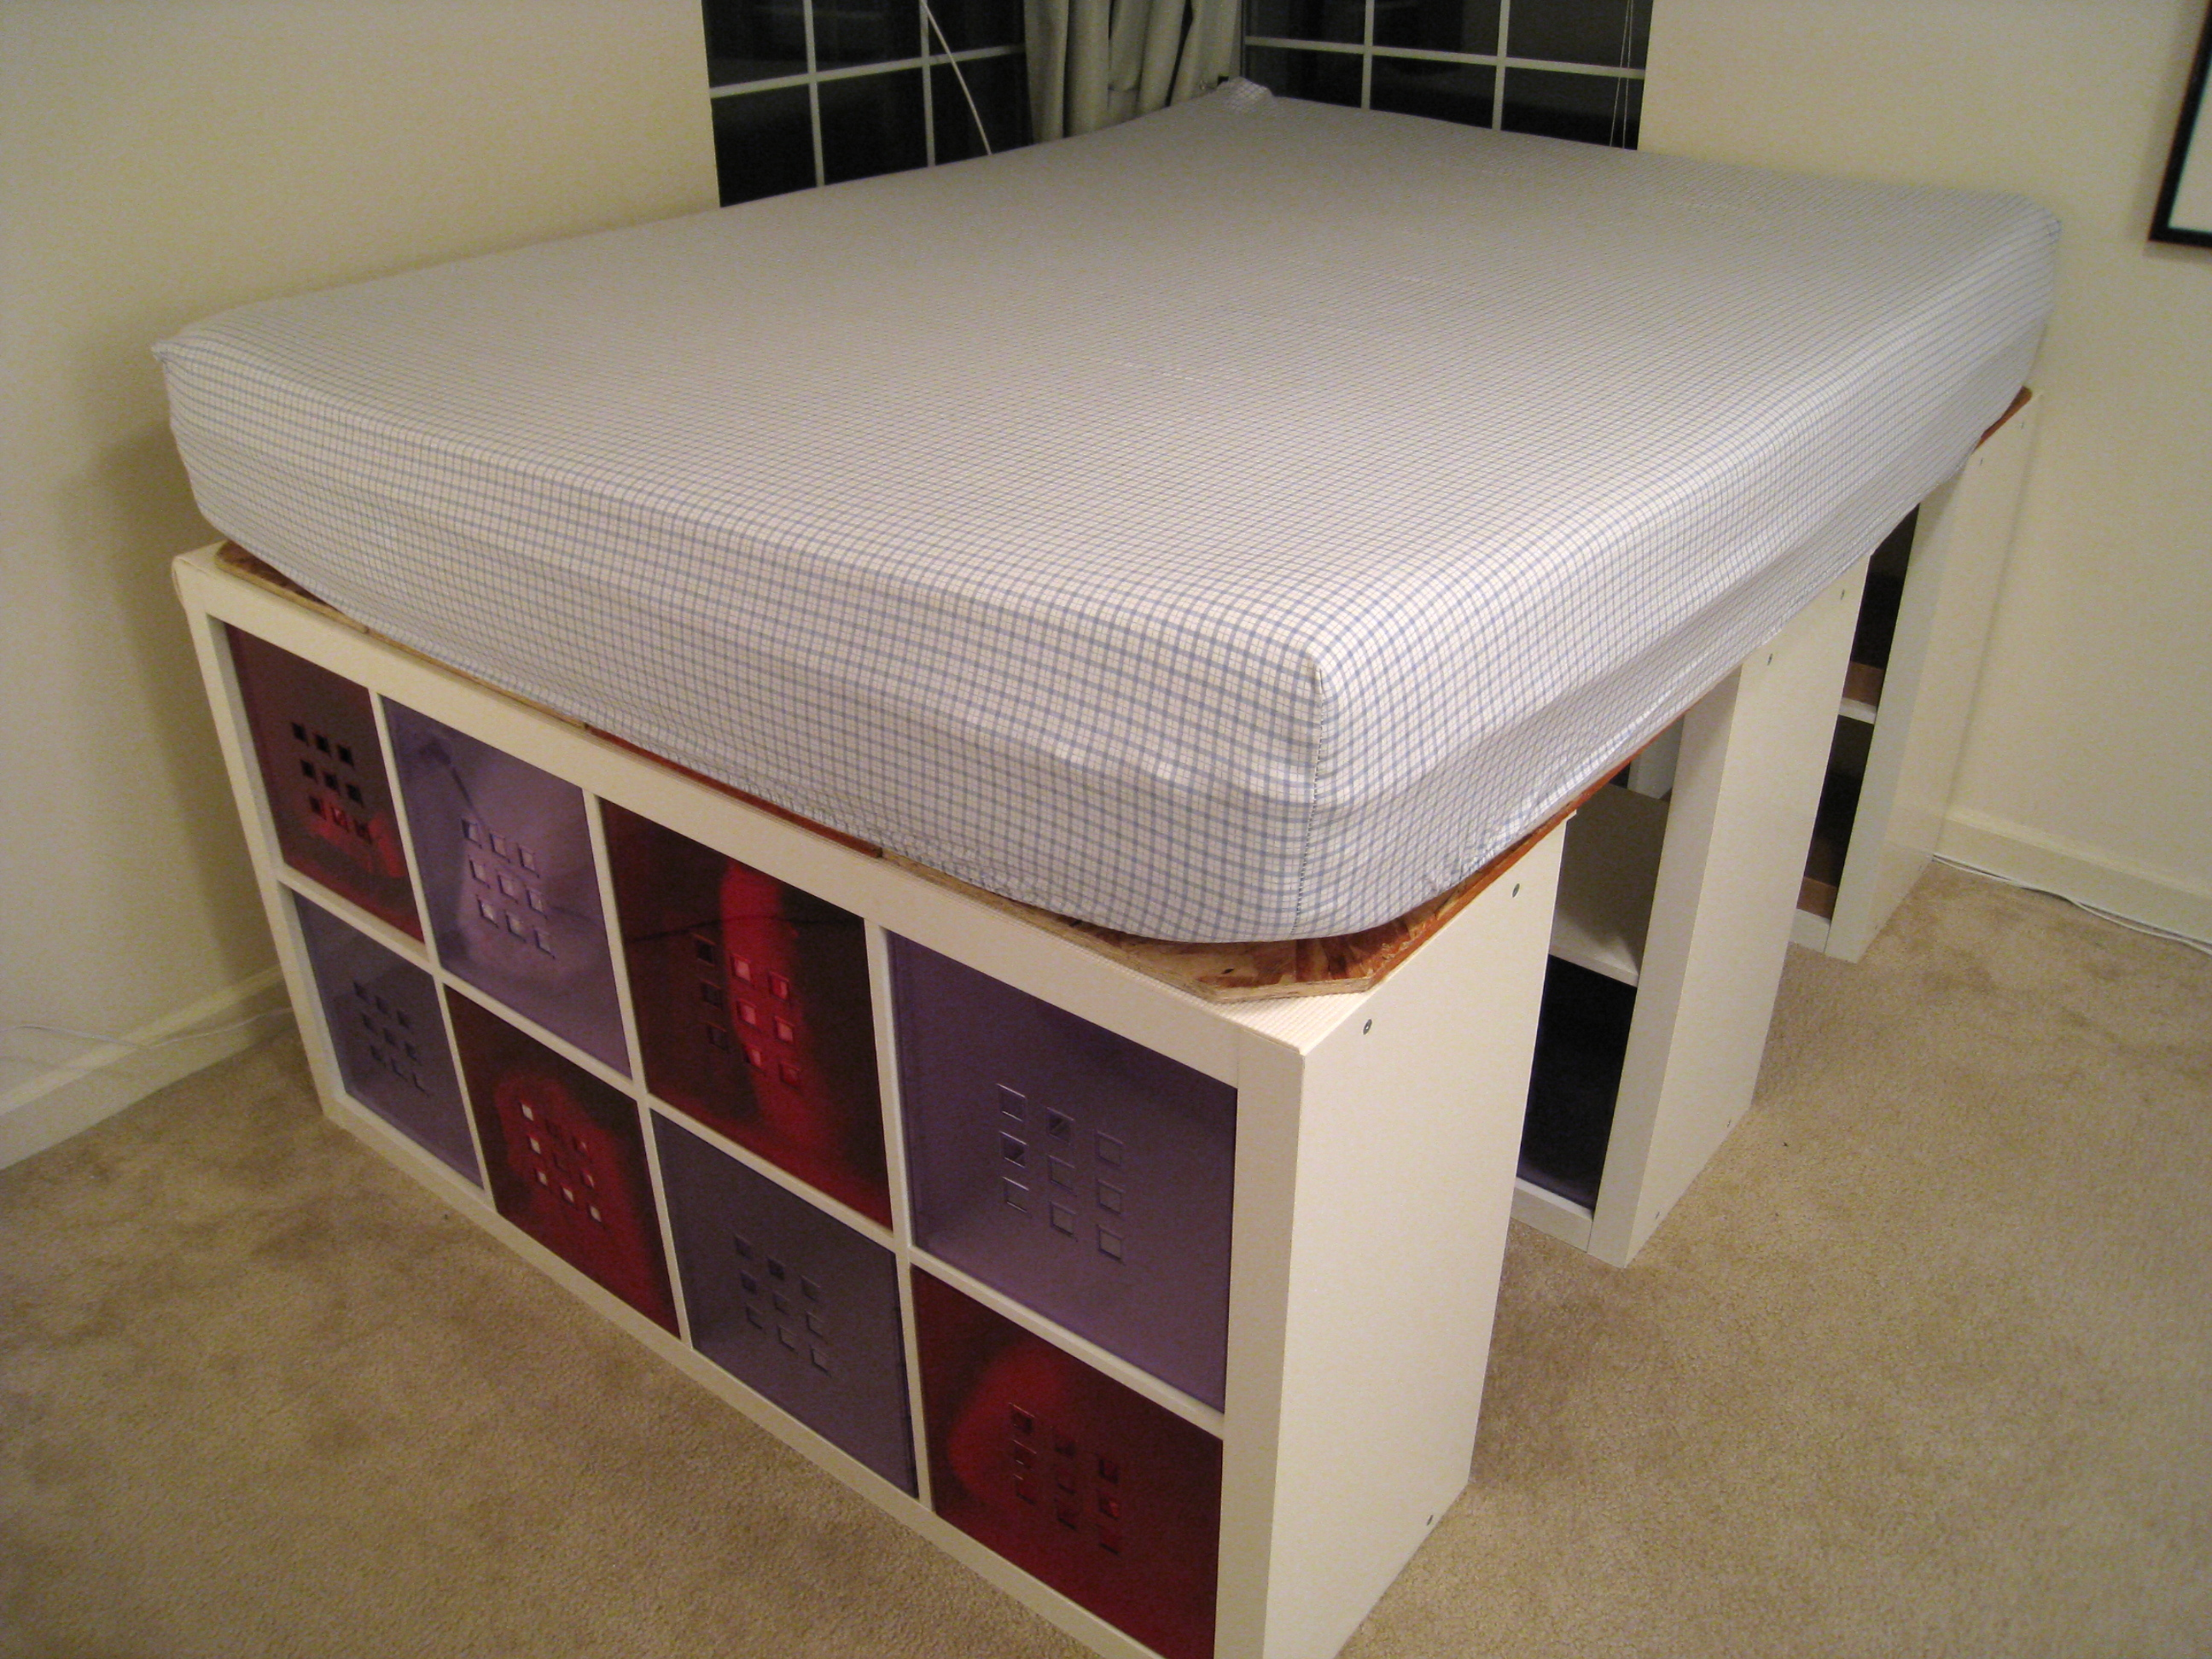 Hack your Bed for More Storage with Ikea « Tech DC